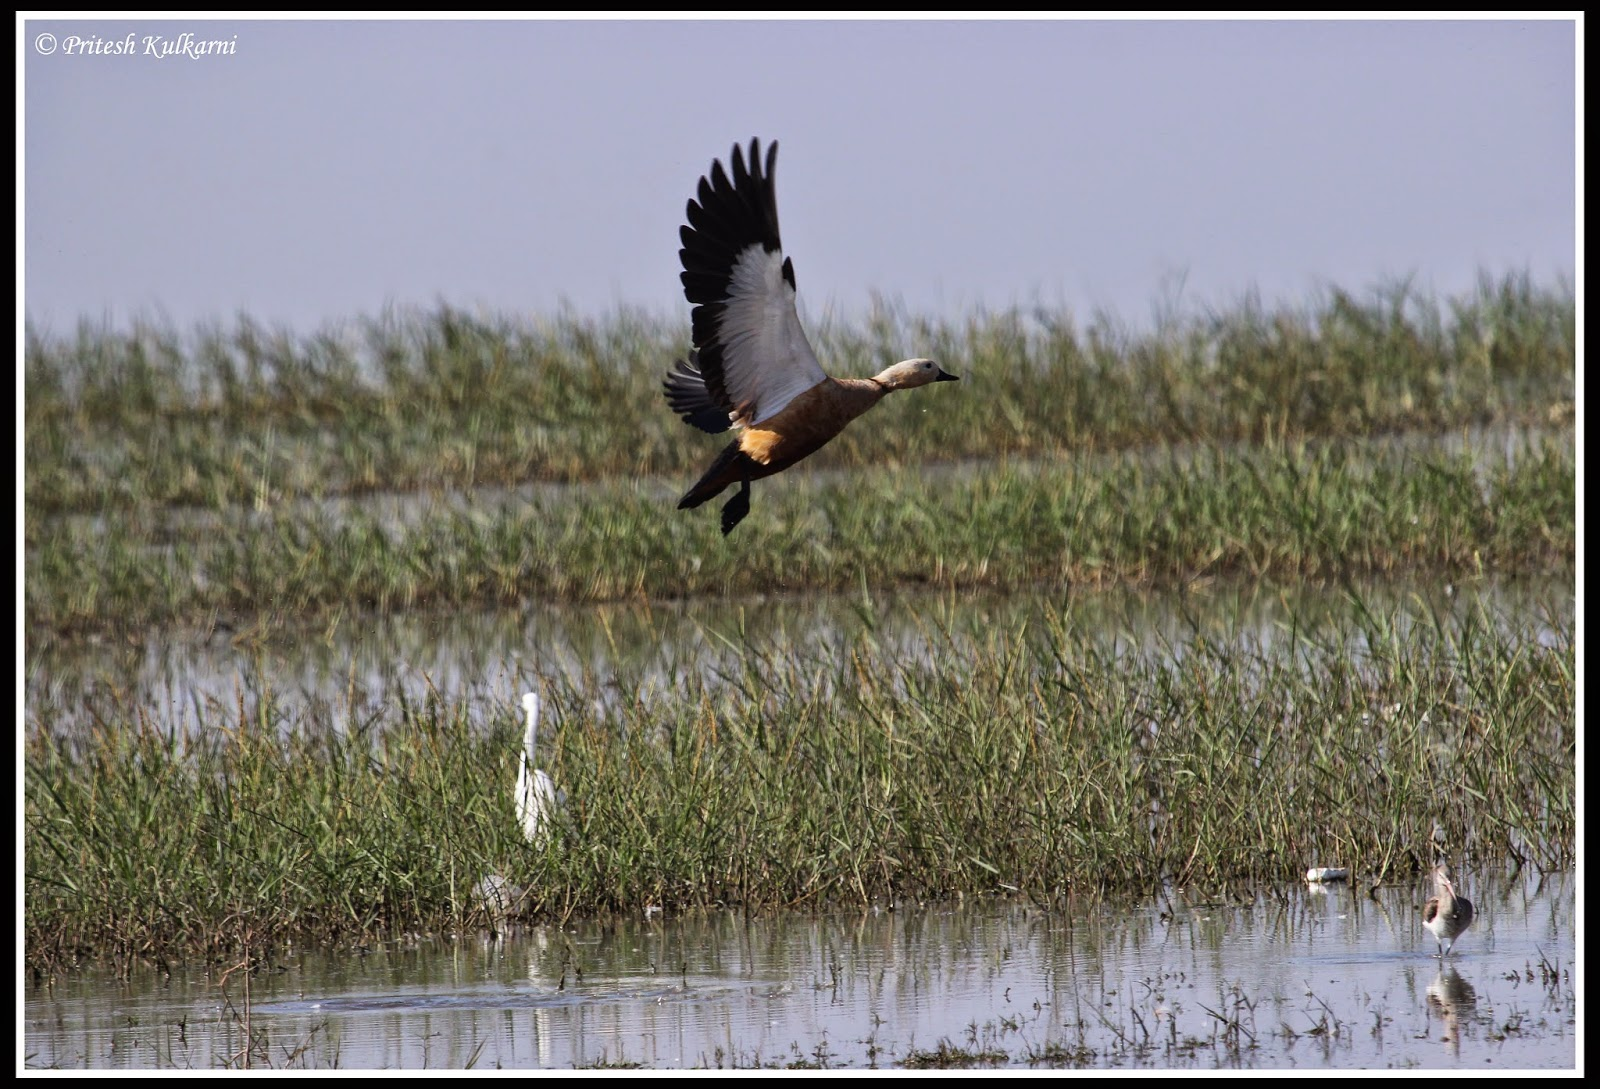 Ruddy Shelduck in flight